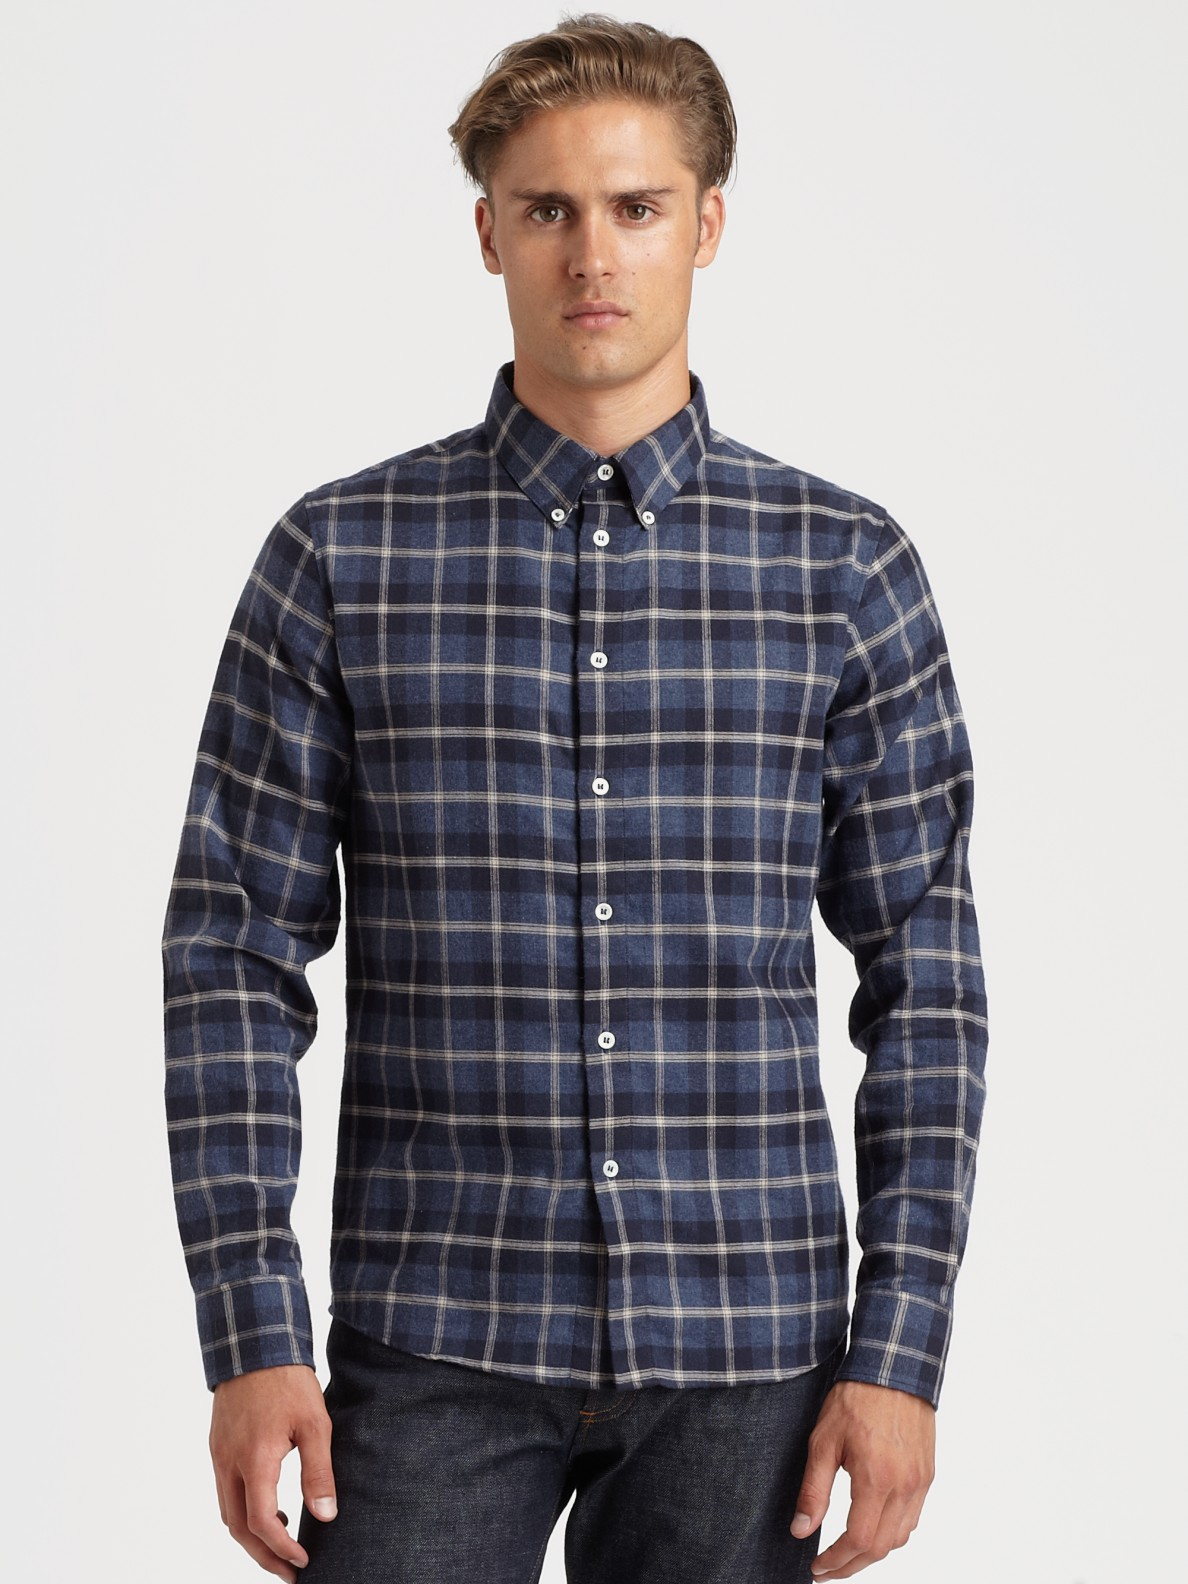 Lyst - A.p.c. Chemise Button Down Sportshirt in Blue for Men